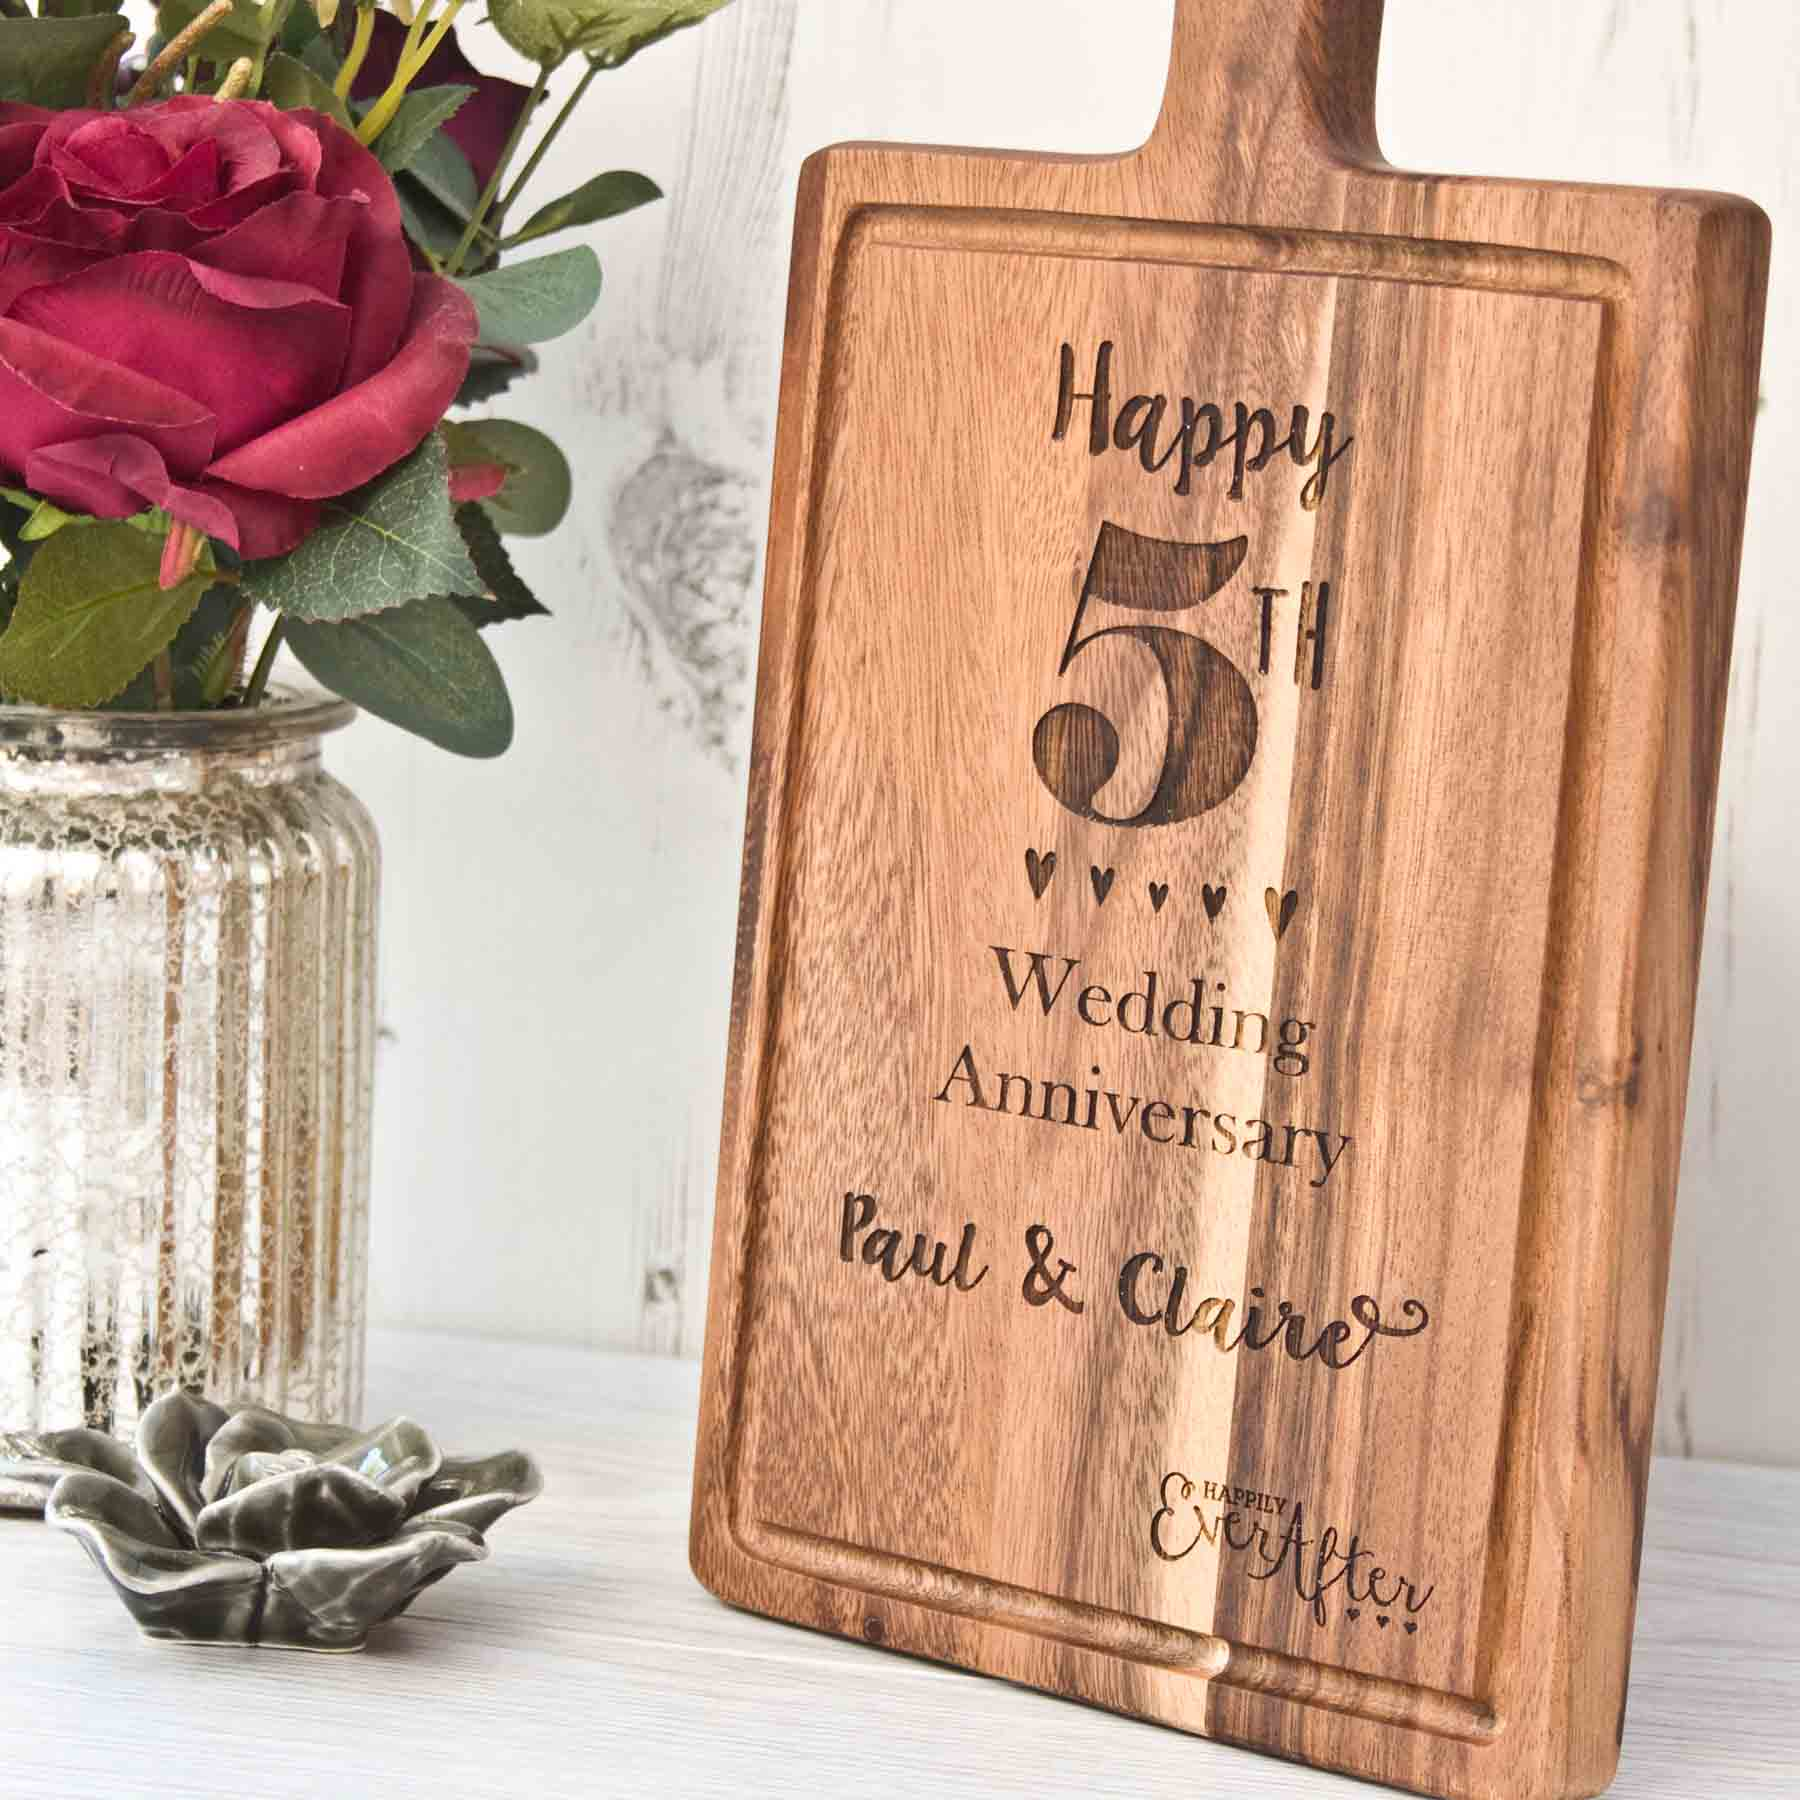 Wedding Anniversary 5th Year - The Laser Boutique